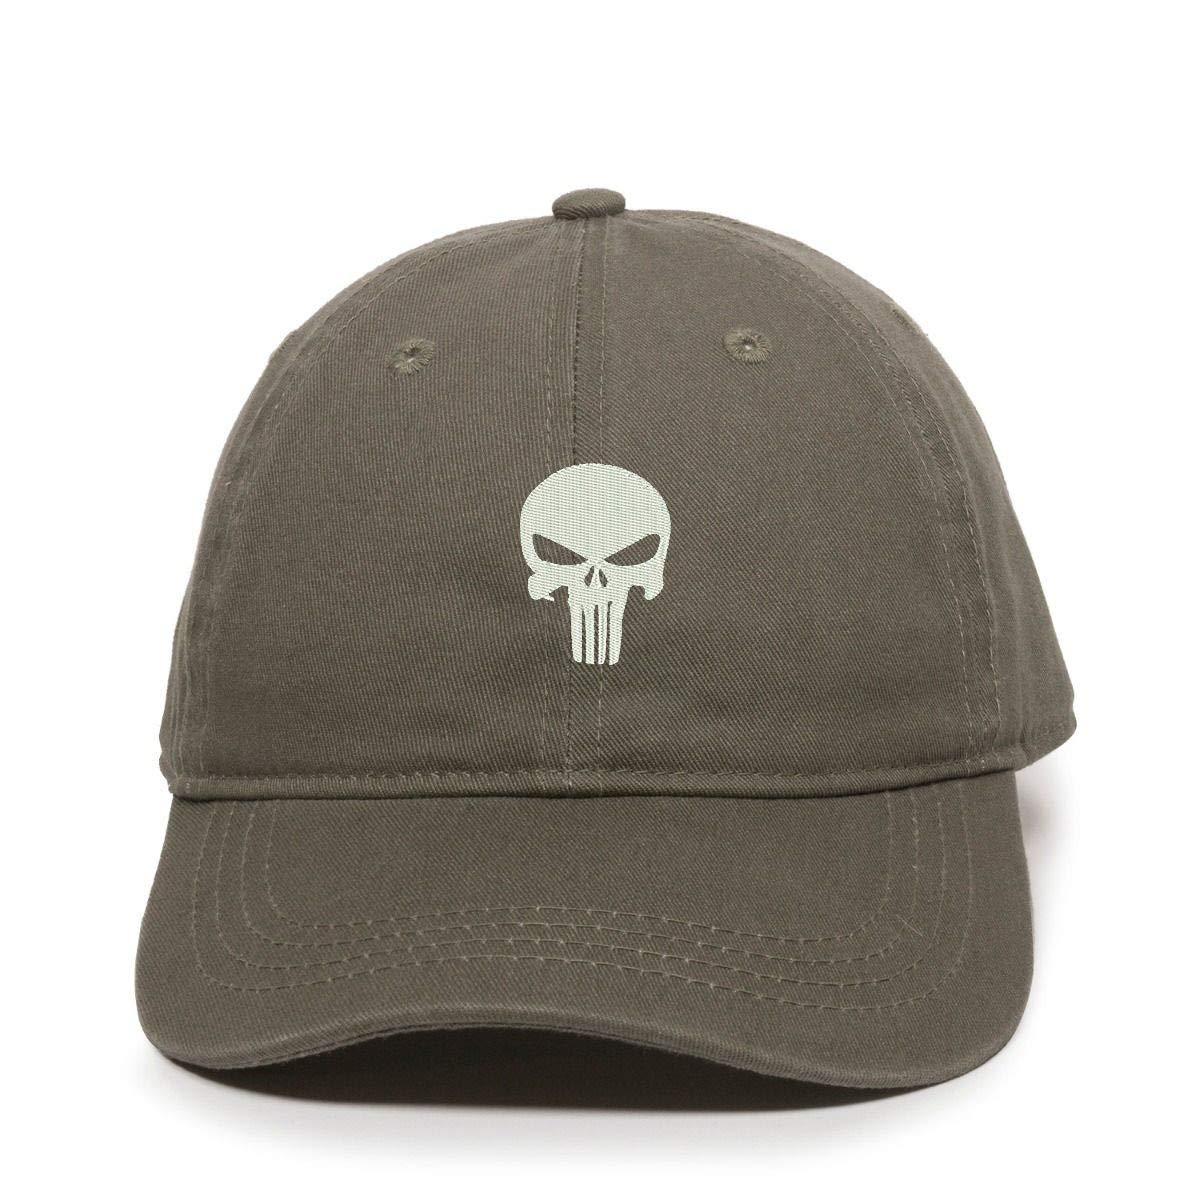 DSGN By DNA Punisher Skull Baseball Cap Embroidered Cotton Adjustable Dad Hat